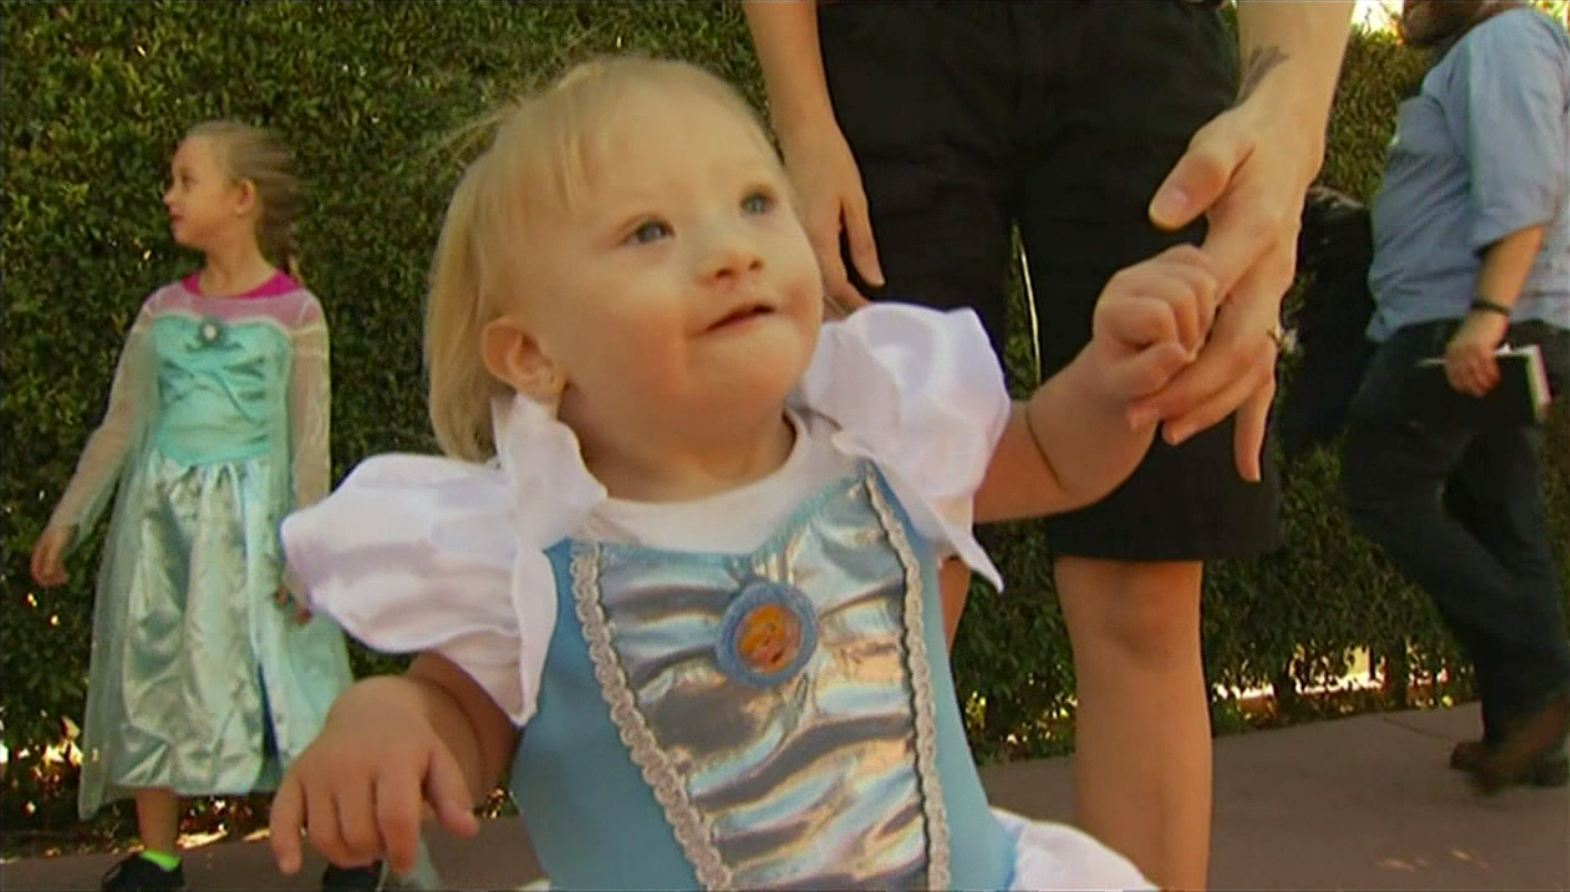 Delaney, a 15-month old girl who has Down syndrome, inspired a petition asking Disney to represent children with disabilities in its animated films. The family presented it at Disney headquarters Wednesday, Nov. 26, 2014.